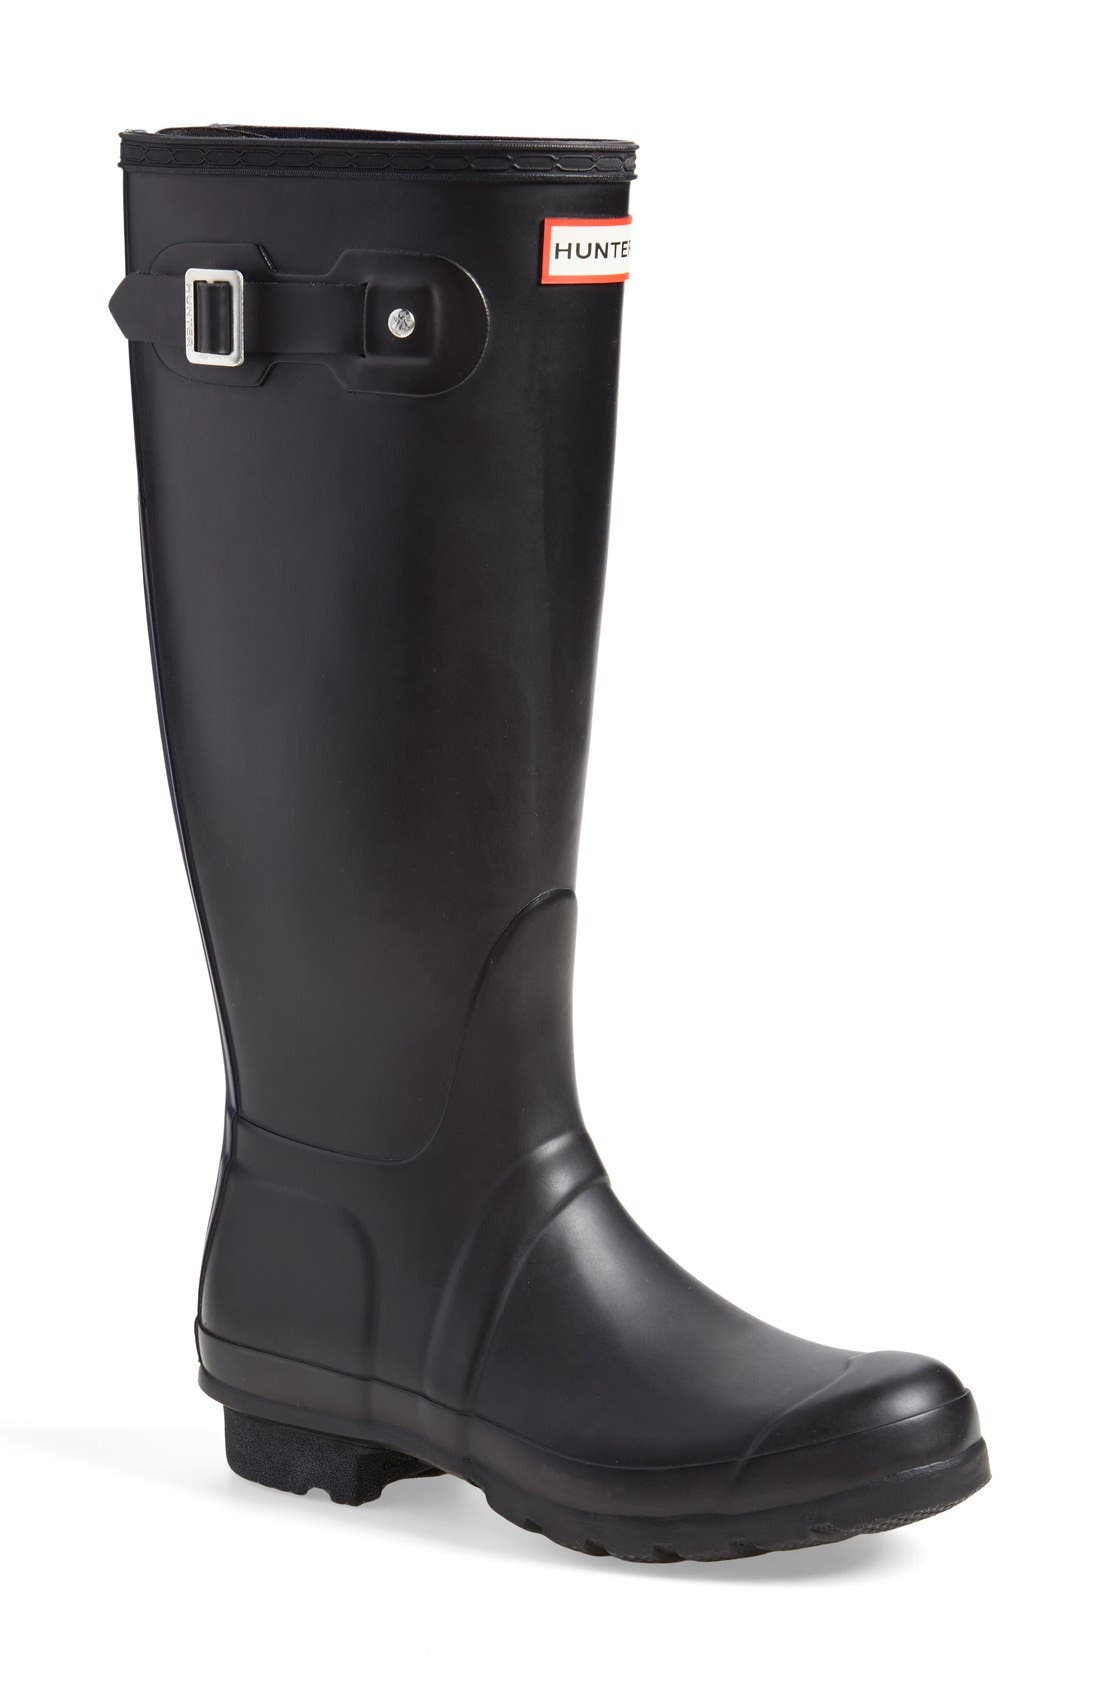 Main Image - Hunter 'Tall' Back Zip Rain Boot (Women) (Nordstrom Exclusive)